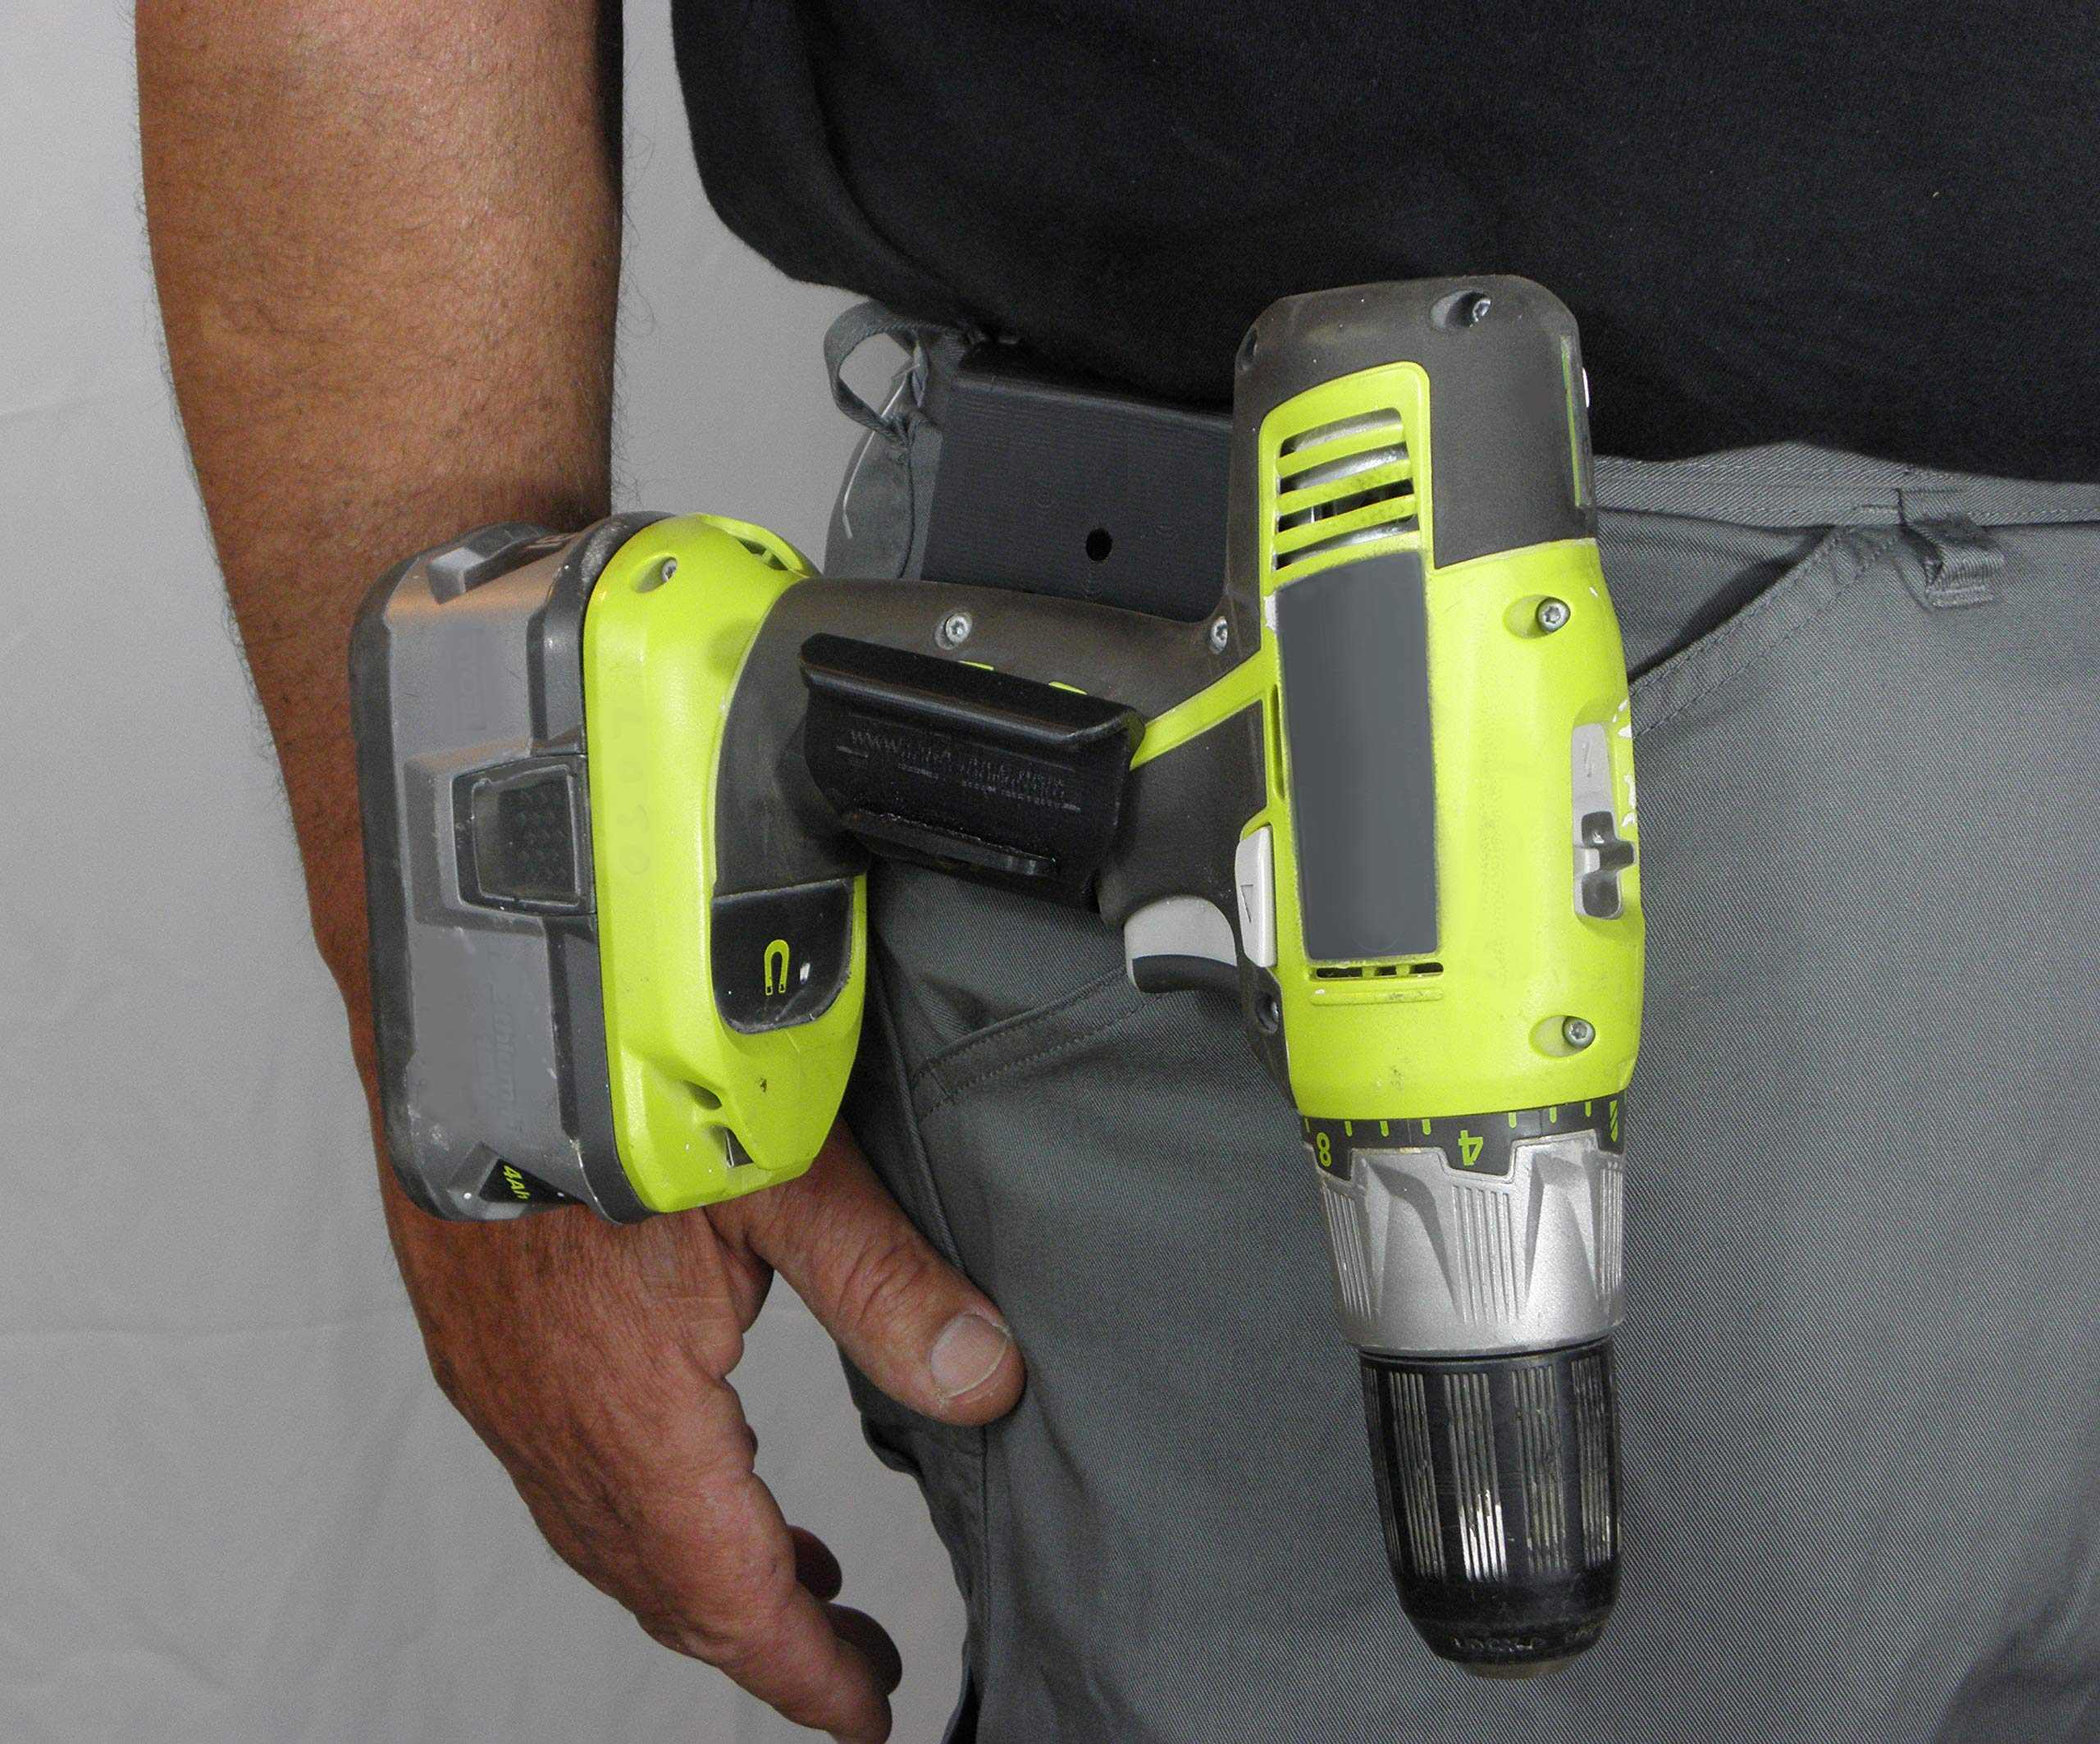 The Gunnie Cordless Drill Holster/Hook - 2-Pack by Gunnie